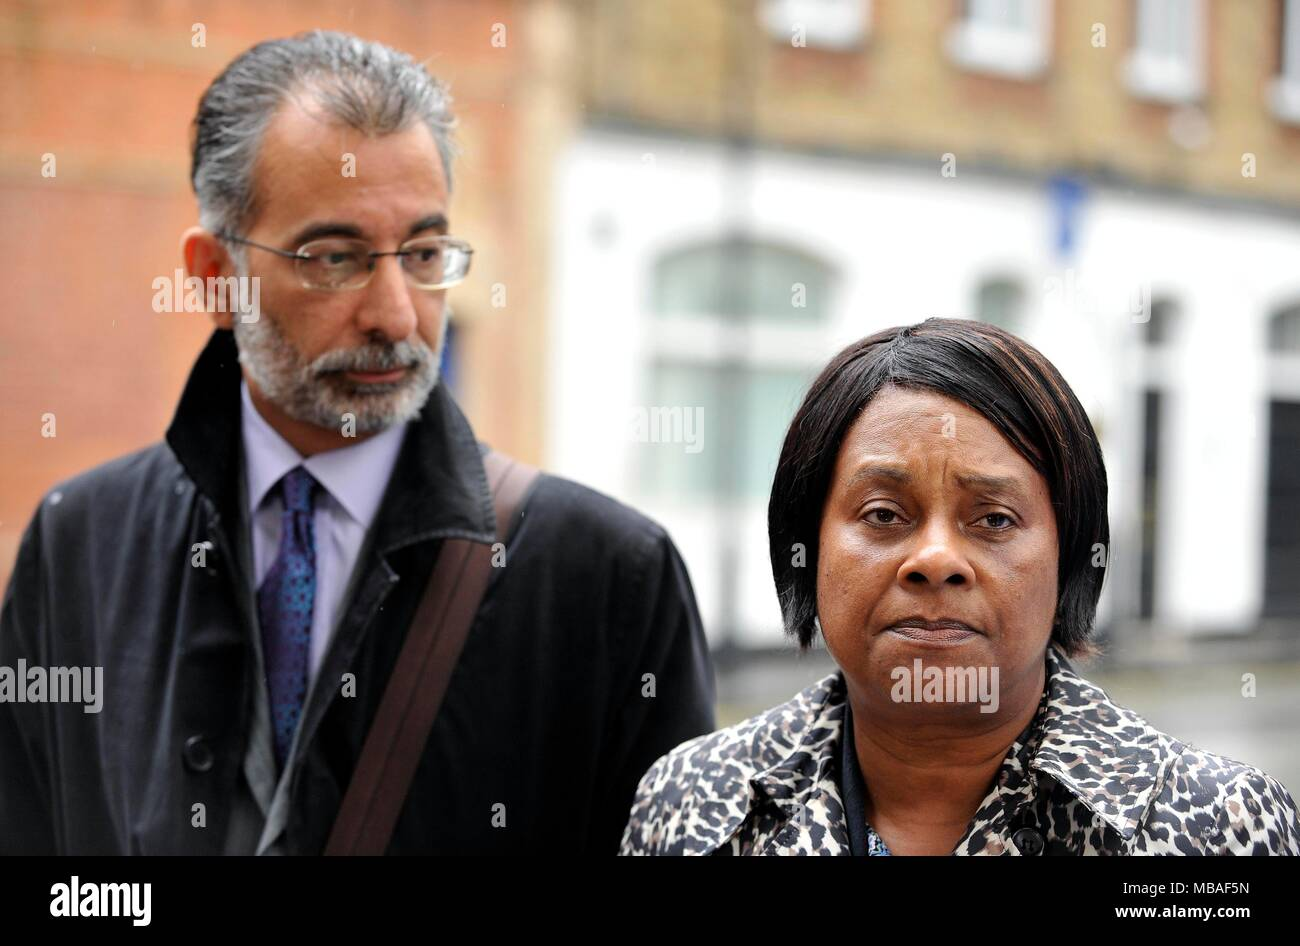 """Embargoed to 0001 Tuesday April 10 Doreen Lawrence, the mother of murdered teenager Stephen Lawrence, with leading lawyer Imran Khan who has claimed institutional racism is """"thriving"""" in the Metropolitan Police, nearly 25 years on from the murder Mr Lawrence. - Stock Image"""